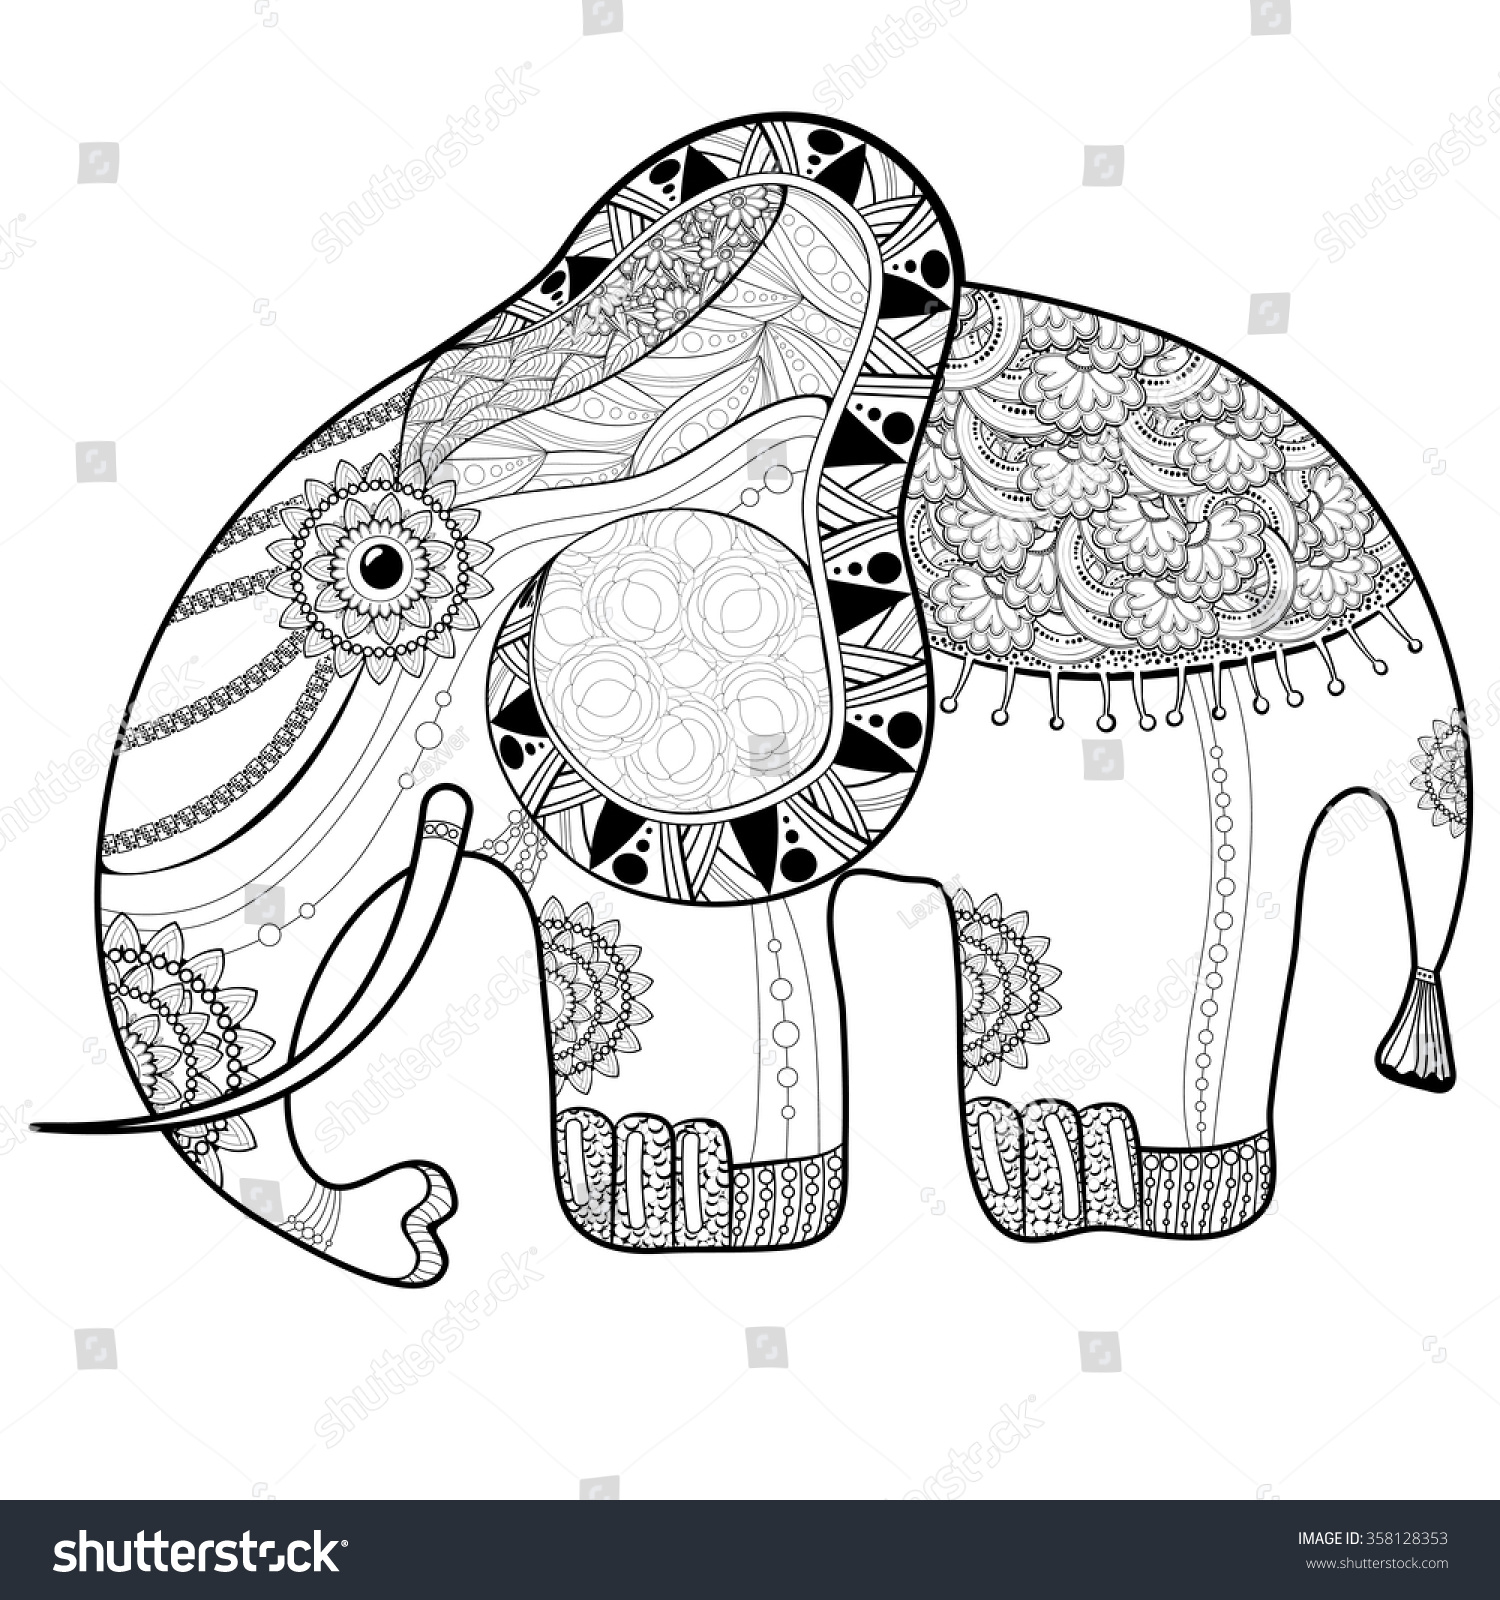 Coloring Book Page For Adults Elephant Ethnic Anti Stress Pattern Of Totem Animal In